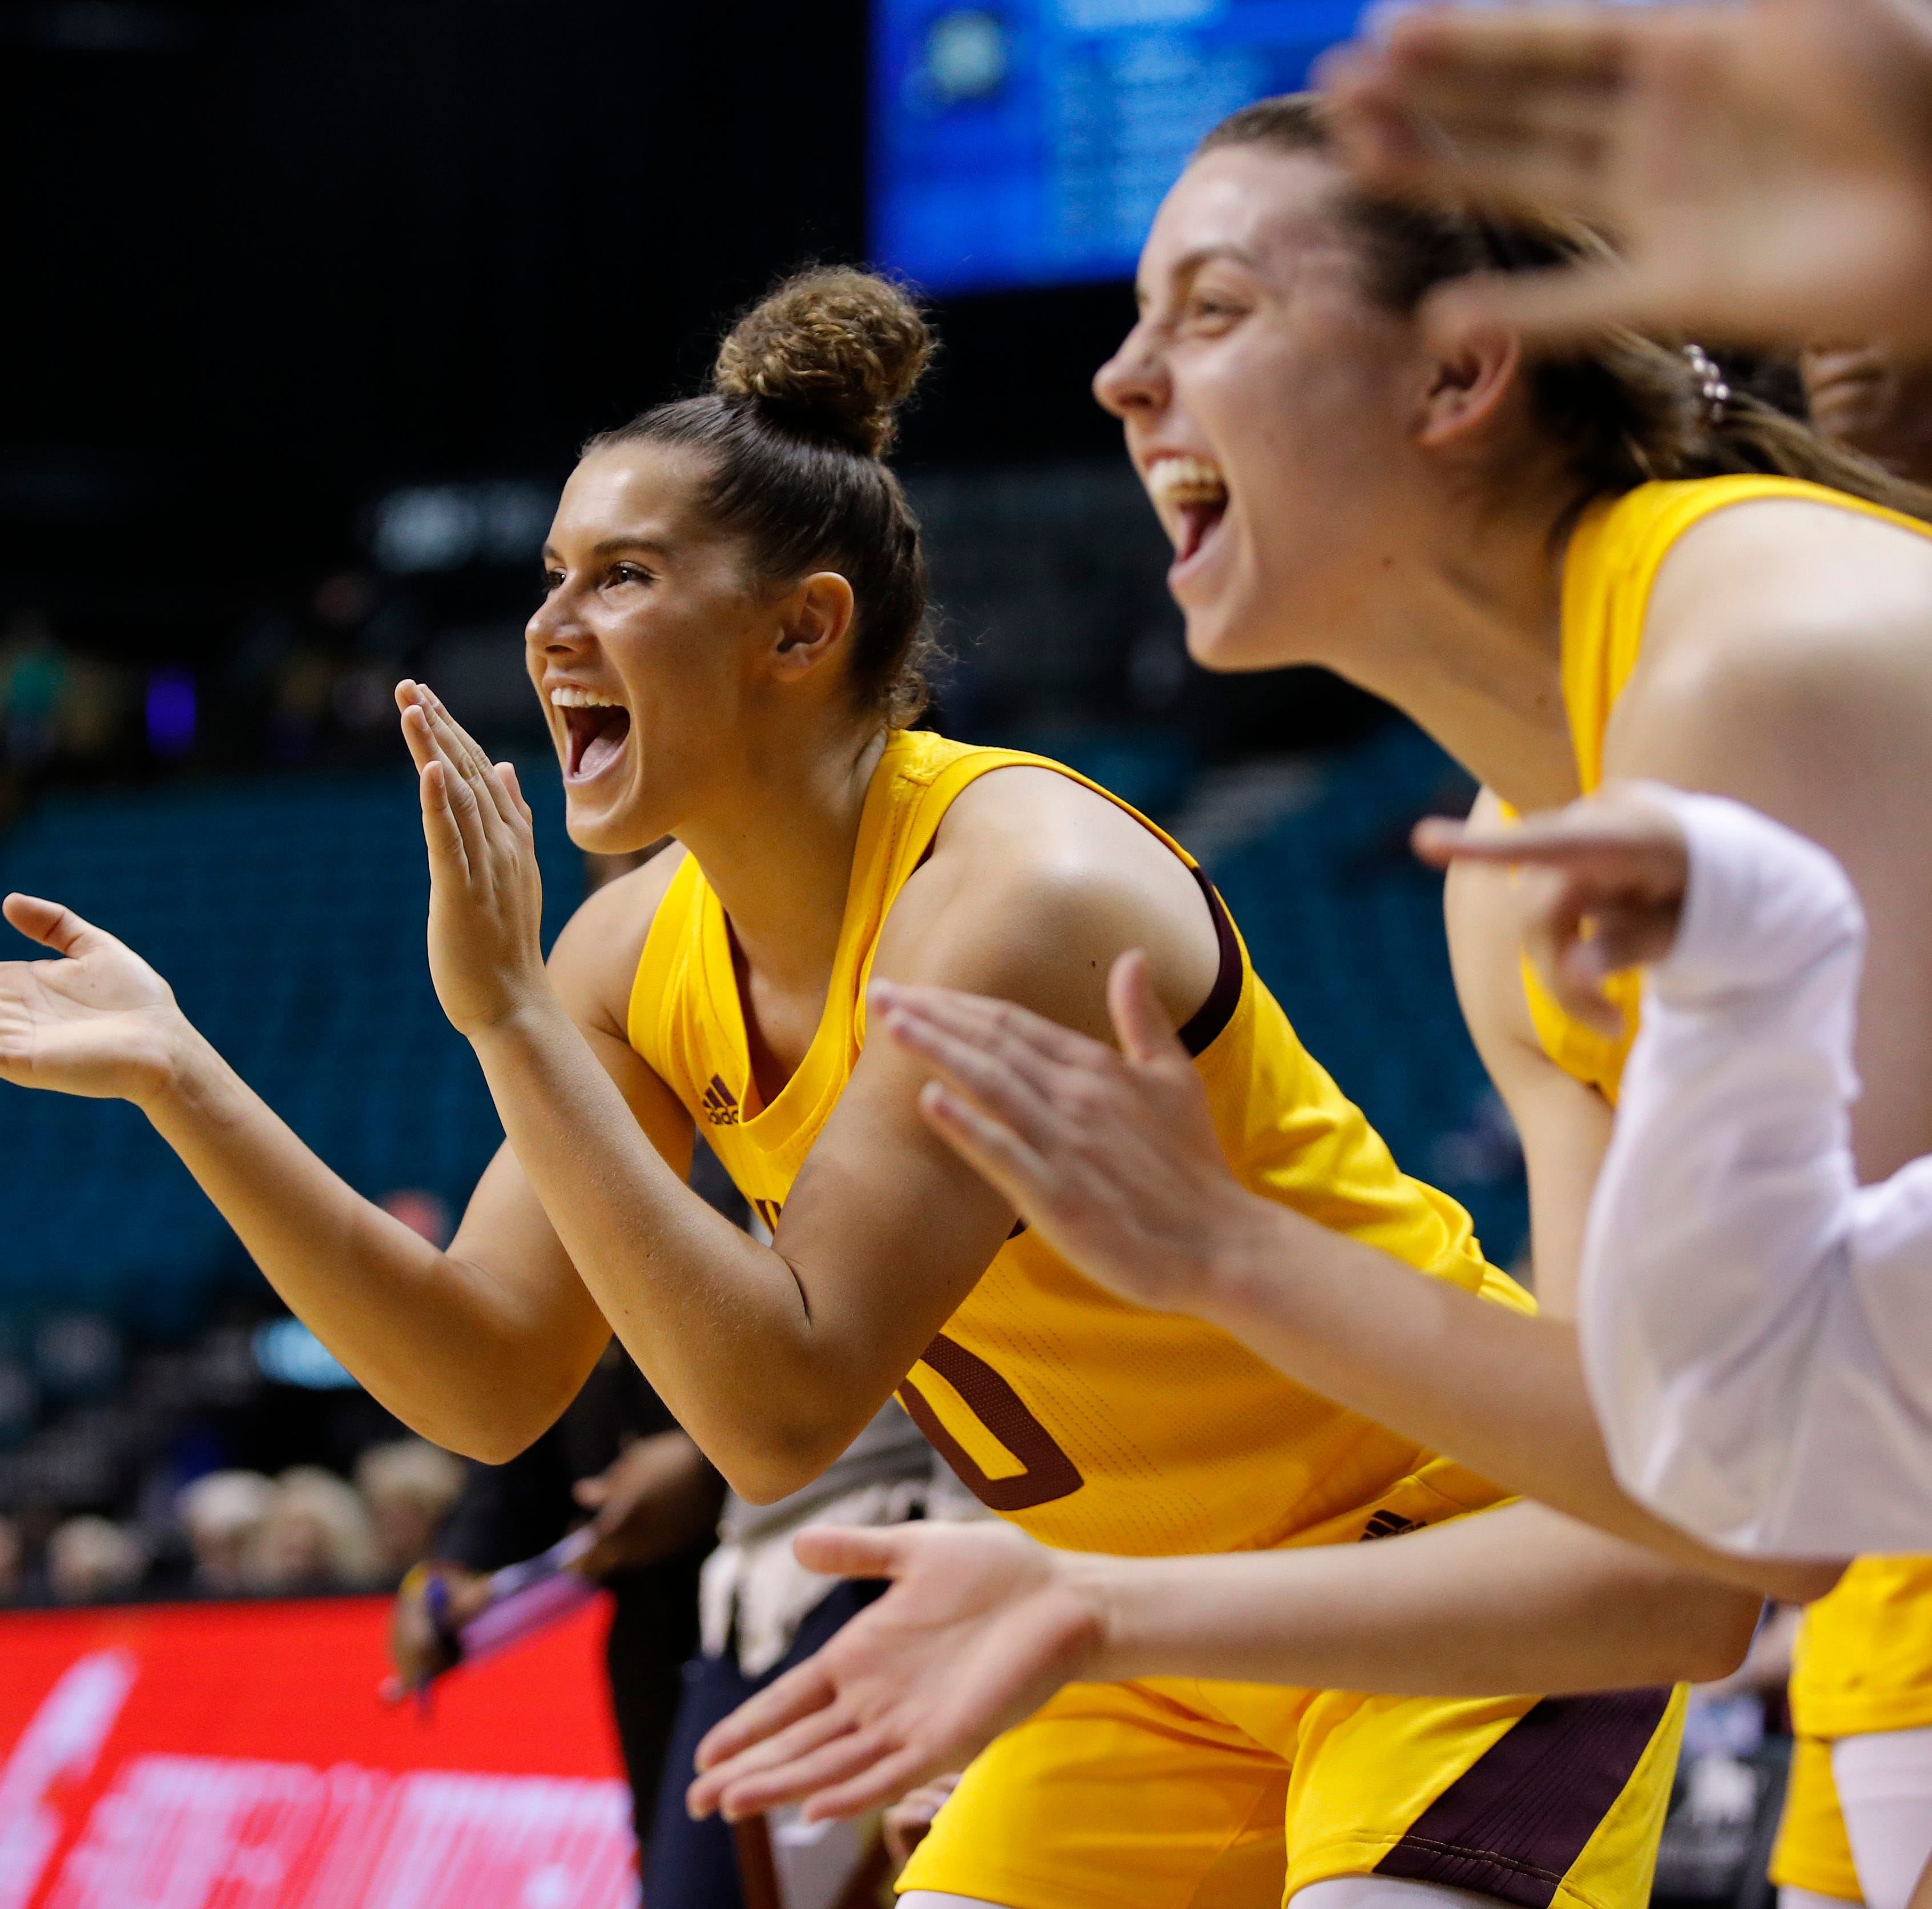 ASU women's basketball clears first round of Pac-12 tournament in win over Colorado